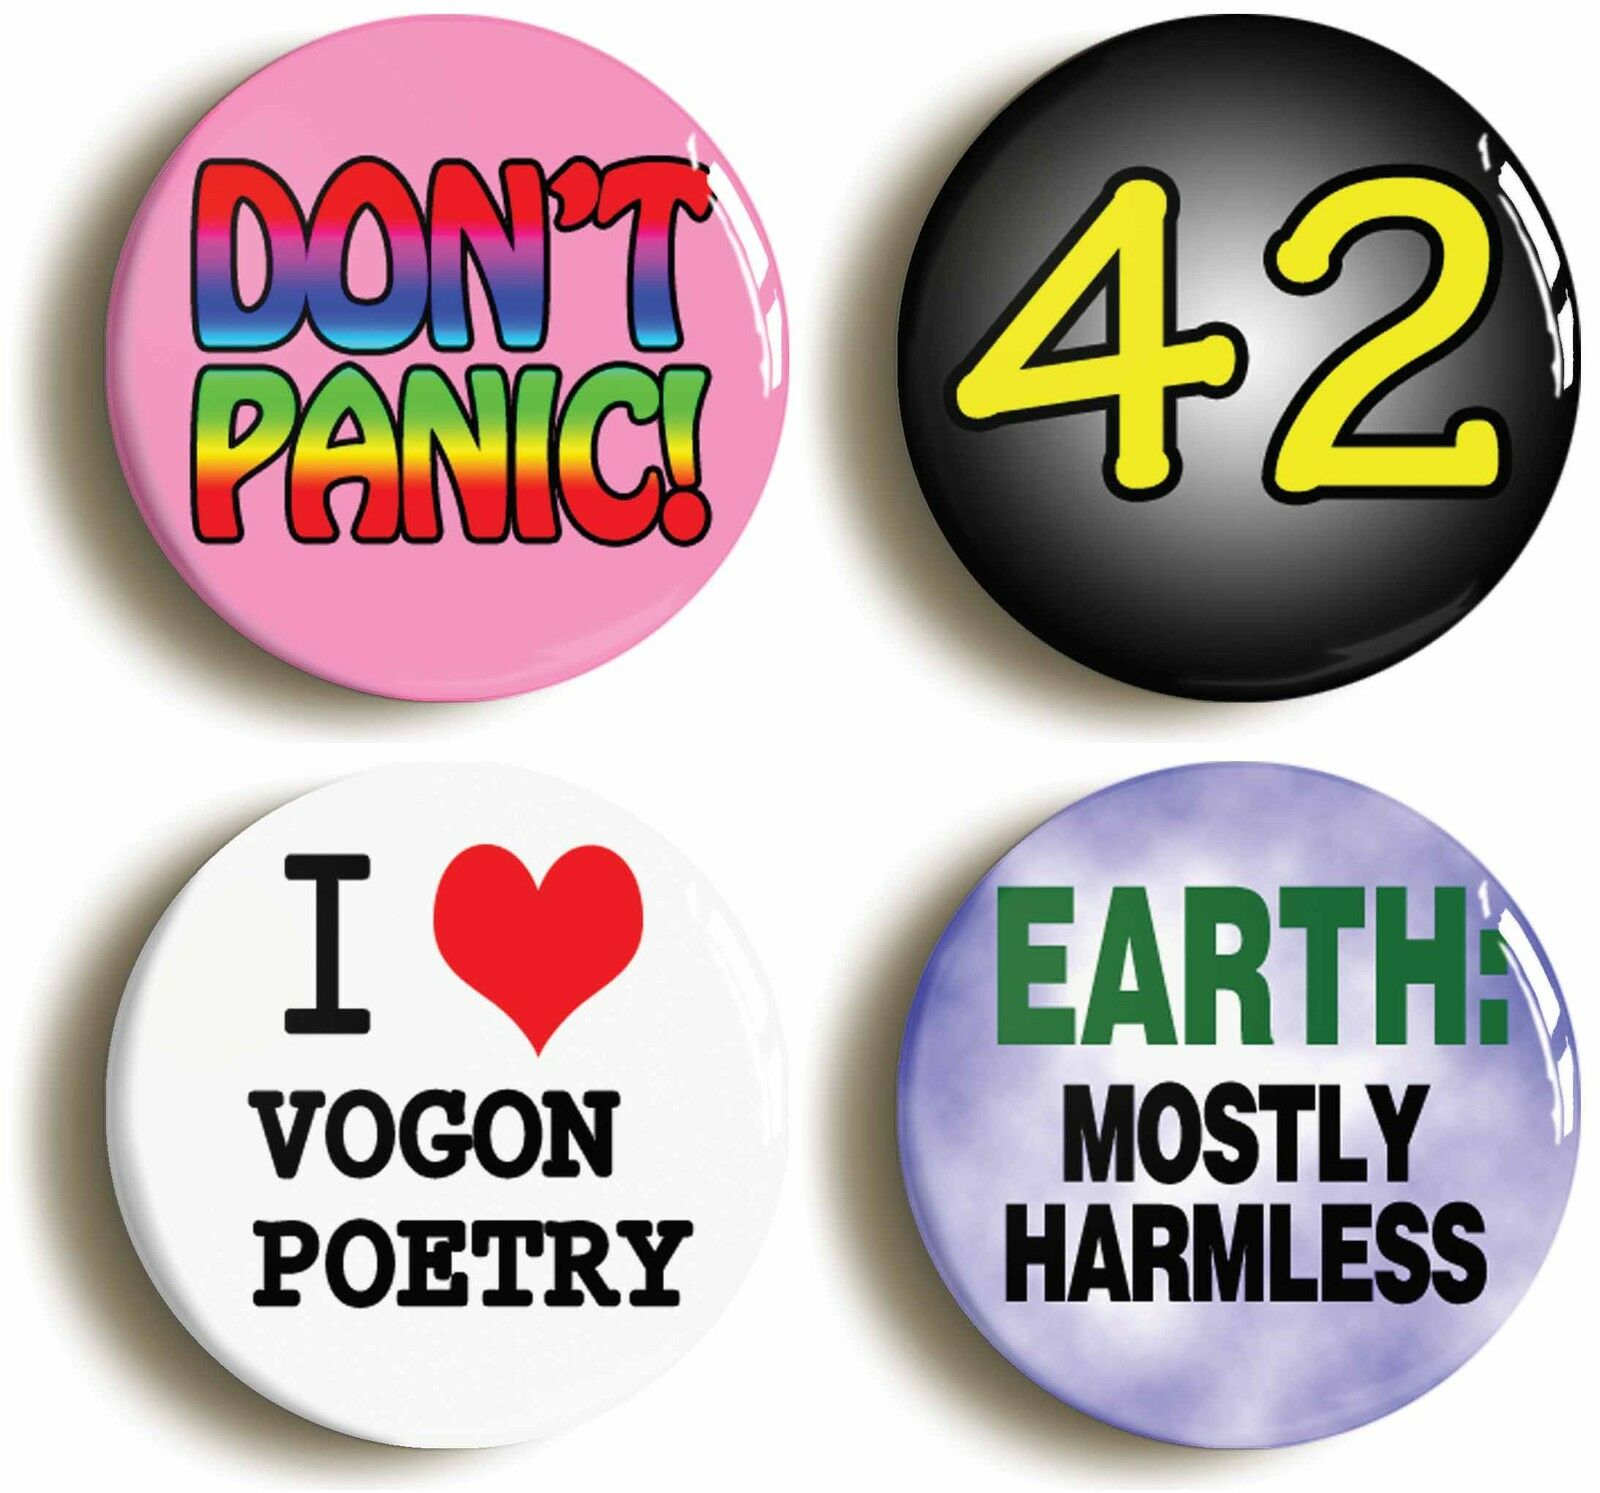 dont panic 42 mostly harmless badge button pin set (size is 1inch/25mm diameter)